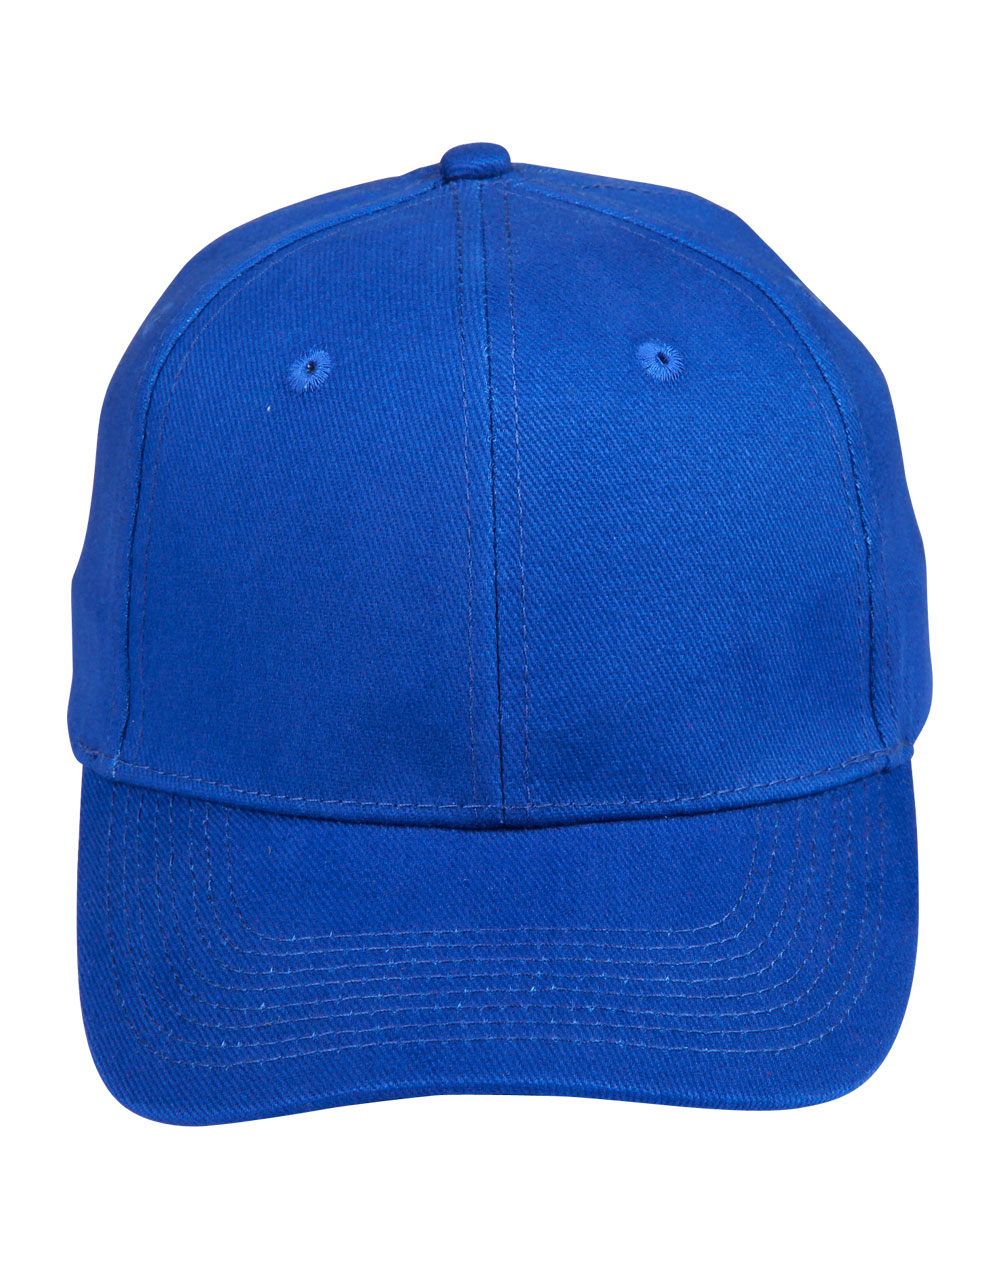 5c36de44 CH01 Traditional Style Baseball Cap